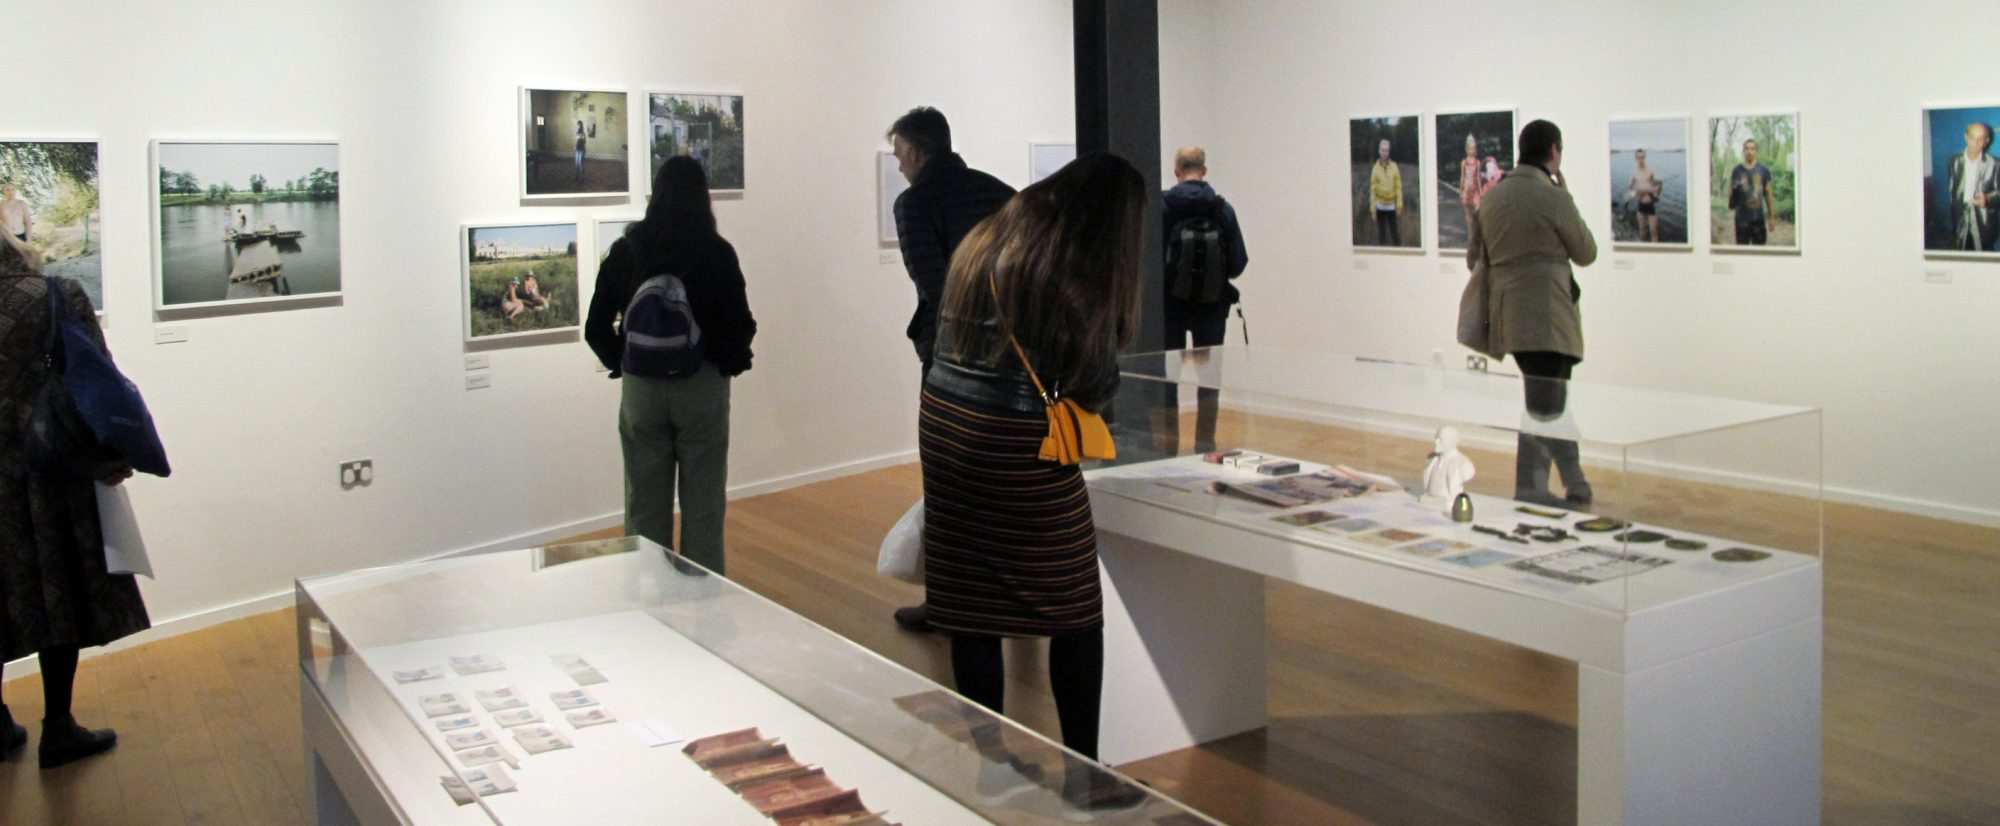 Visitors to the exhibition Borderland